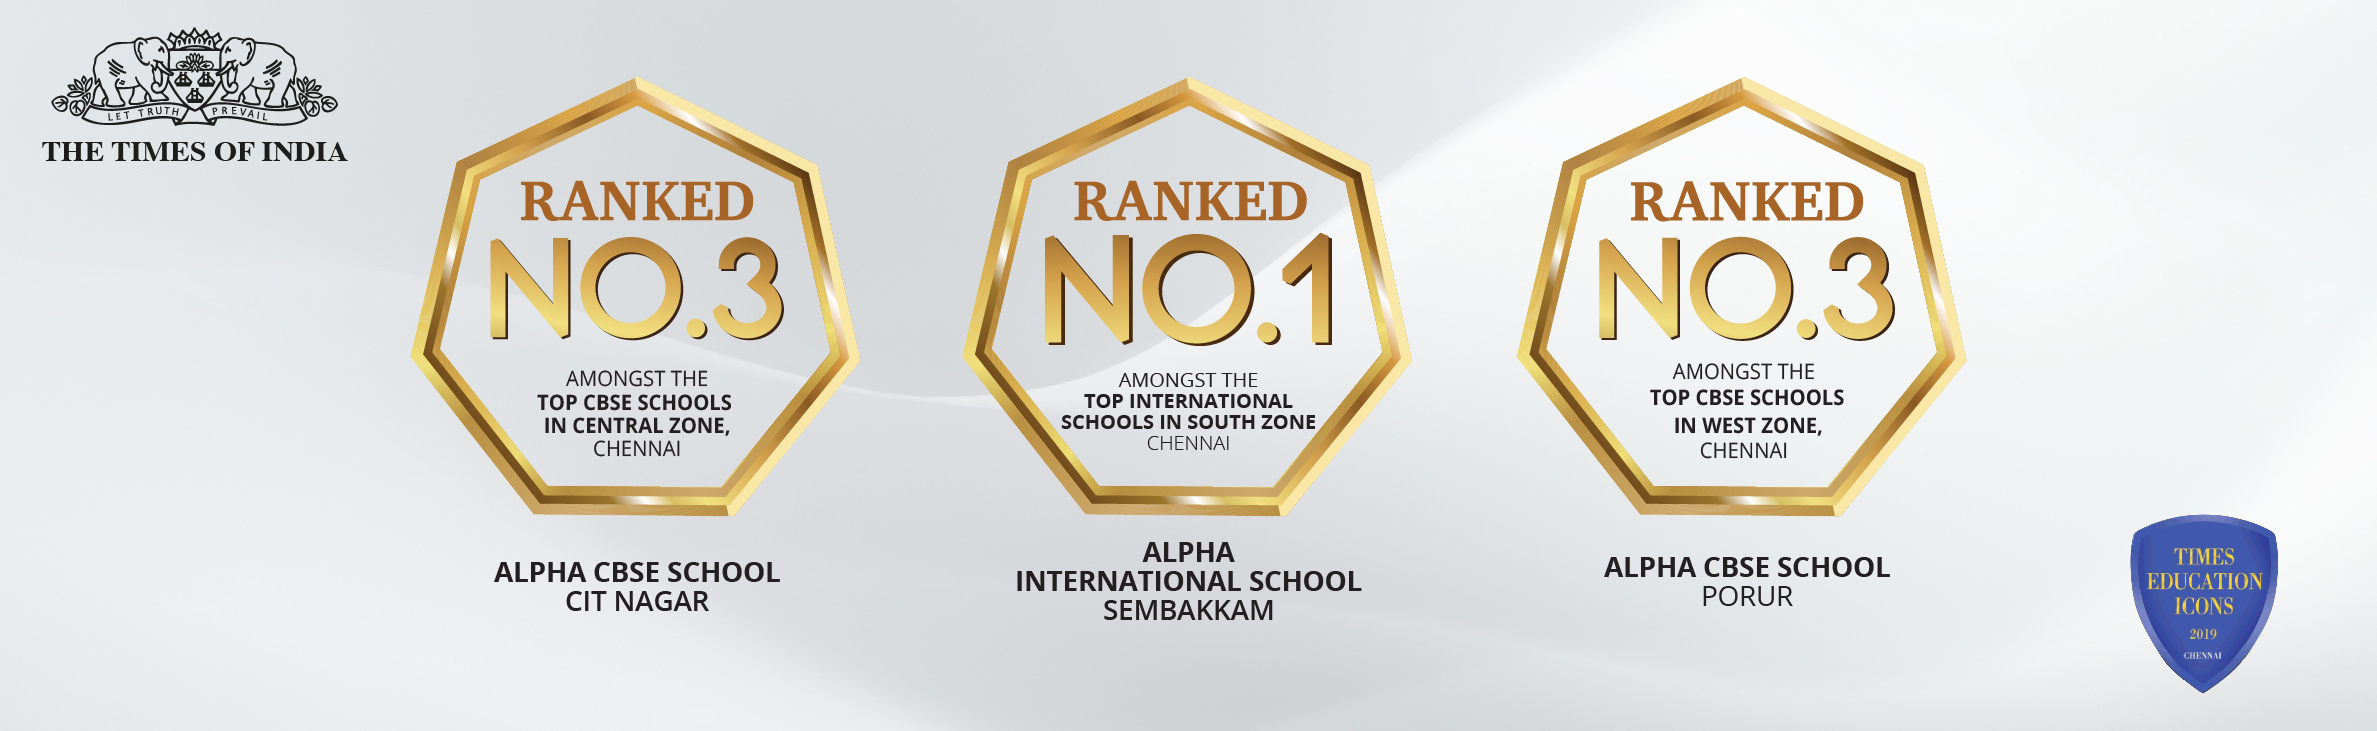 Times of India Education Icon Rank 2019